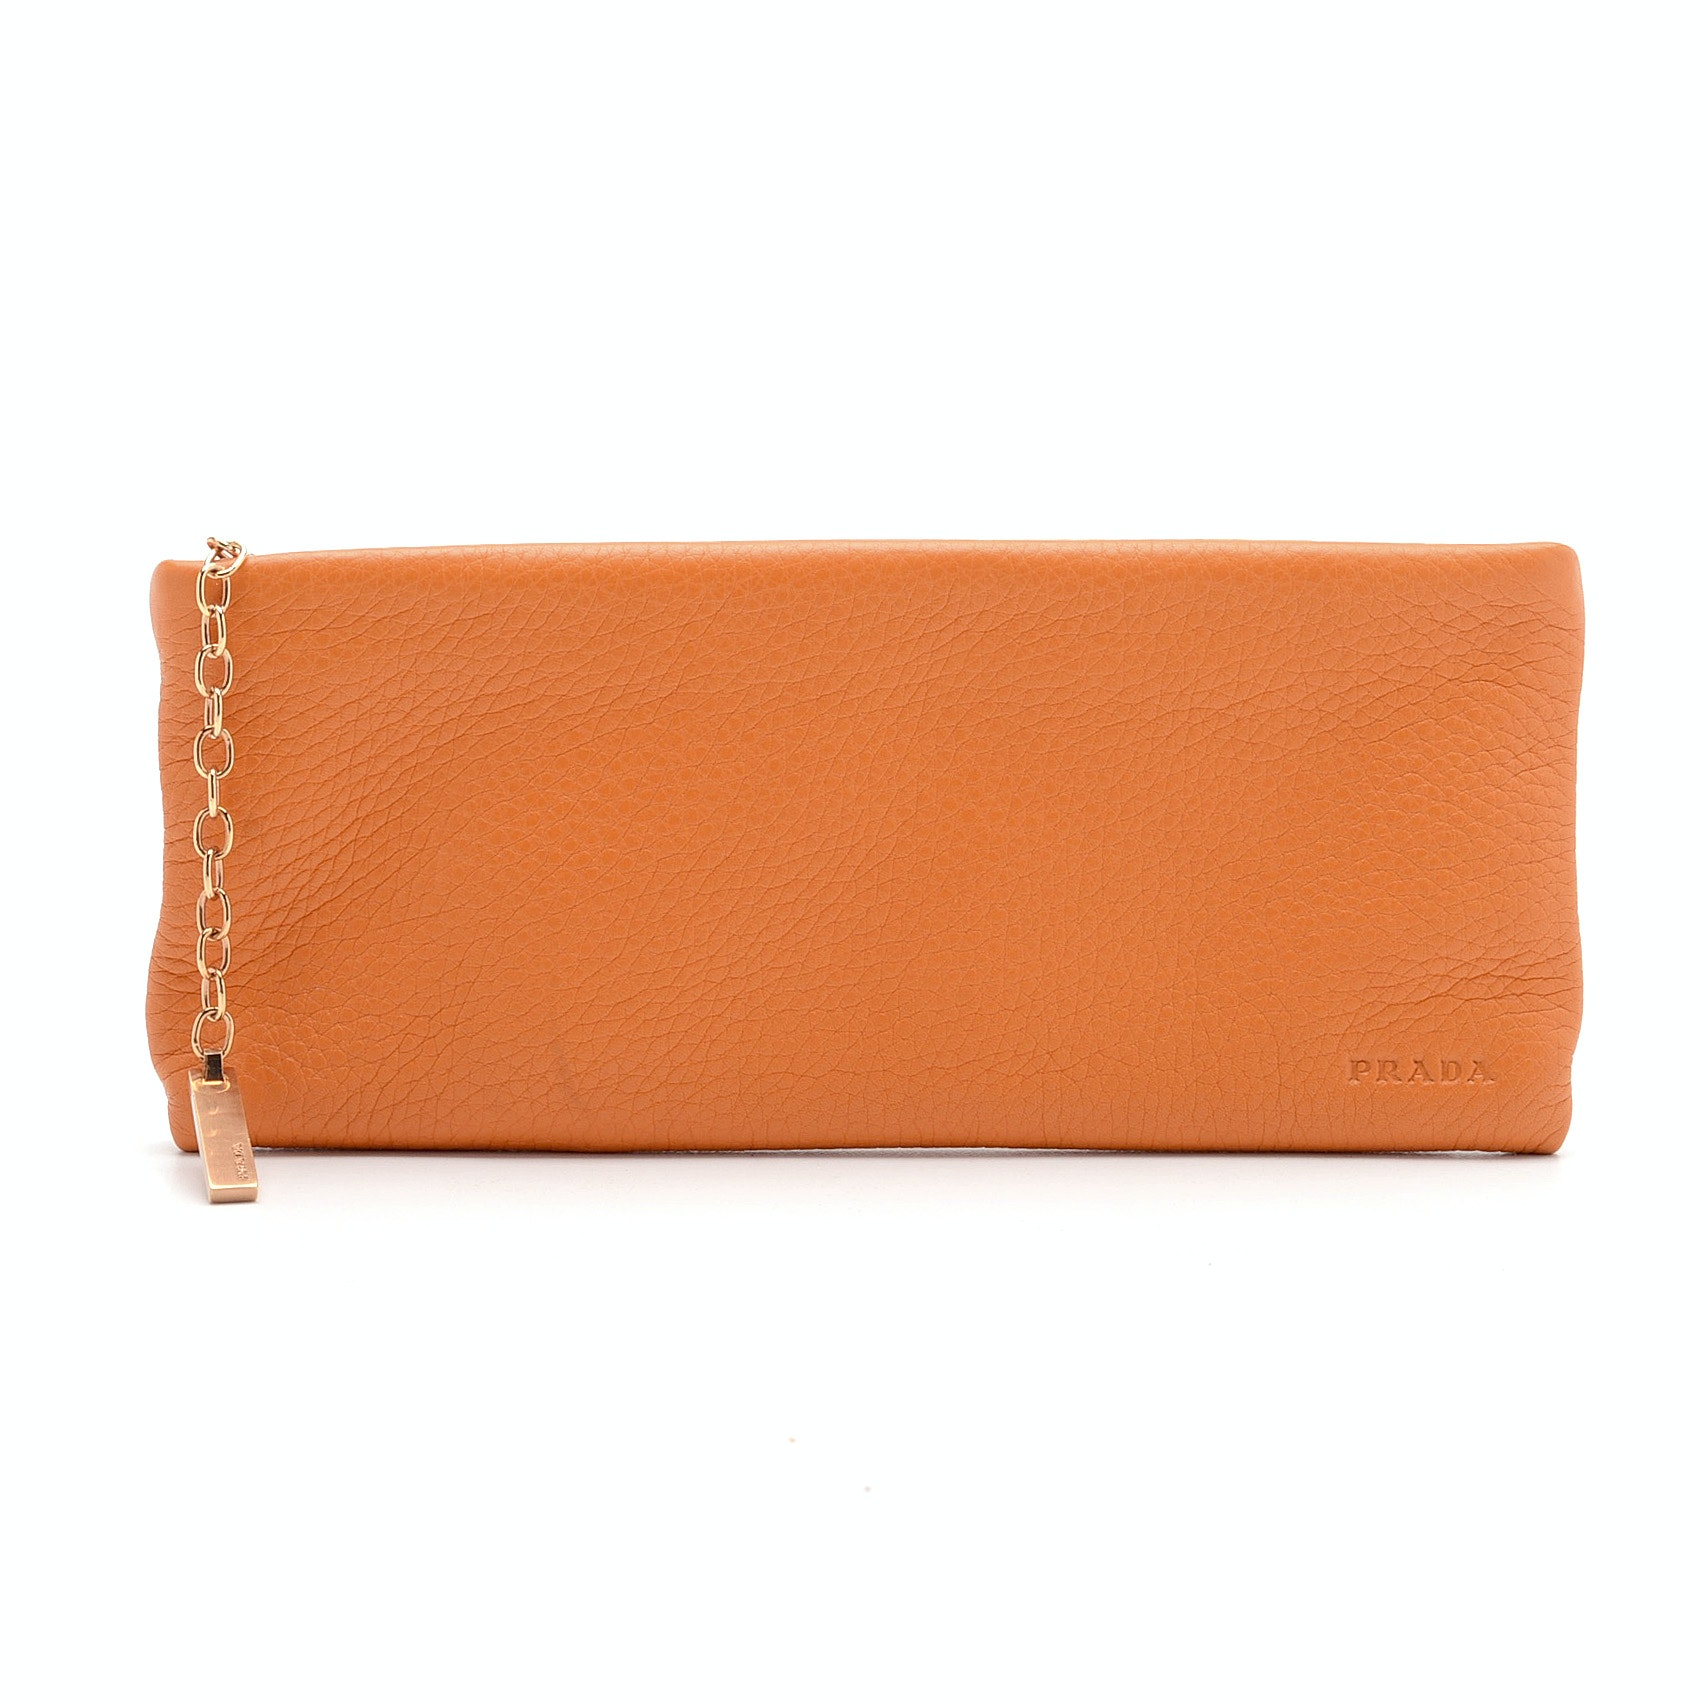 2001 Prada Orange Daino Leather Clutch